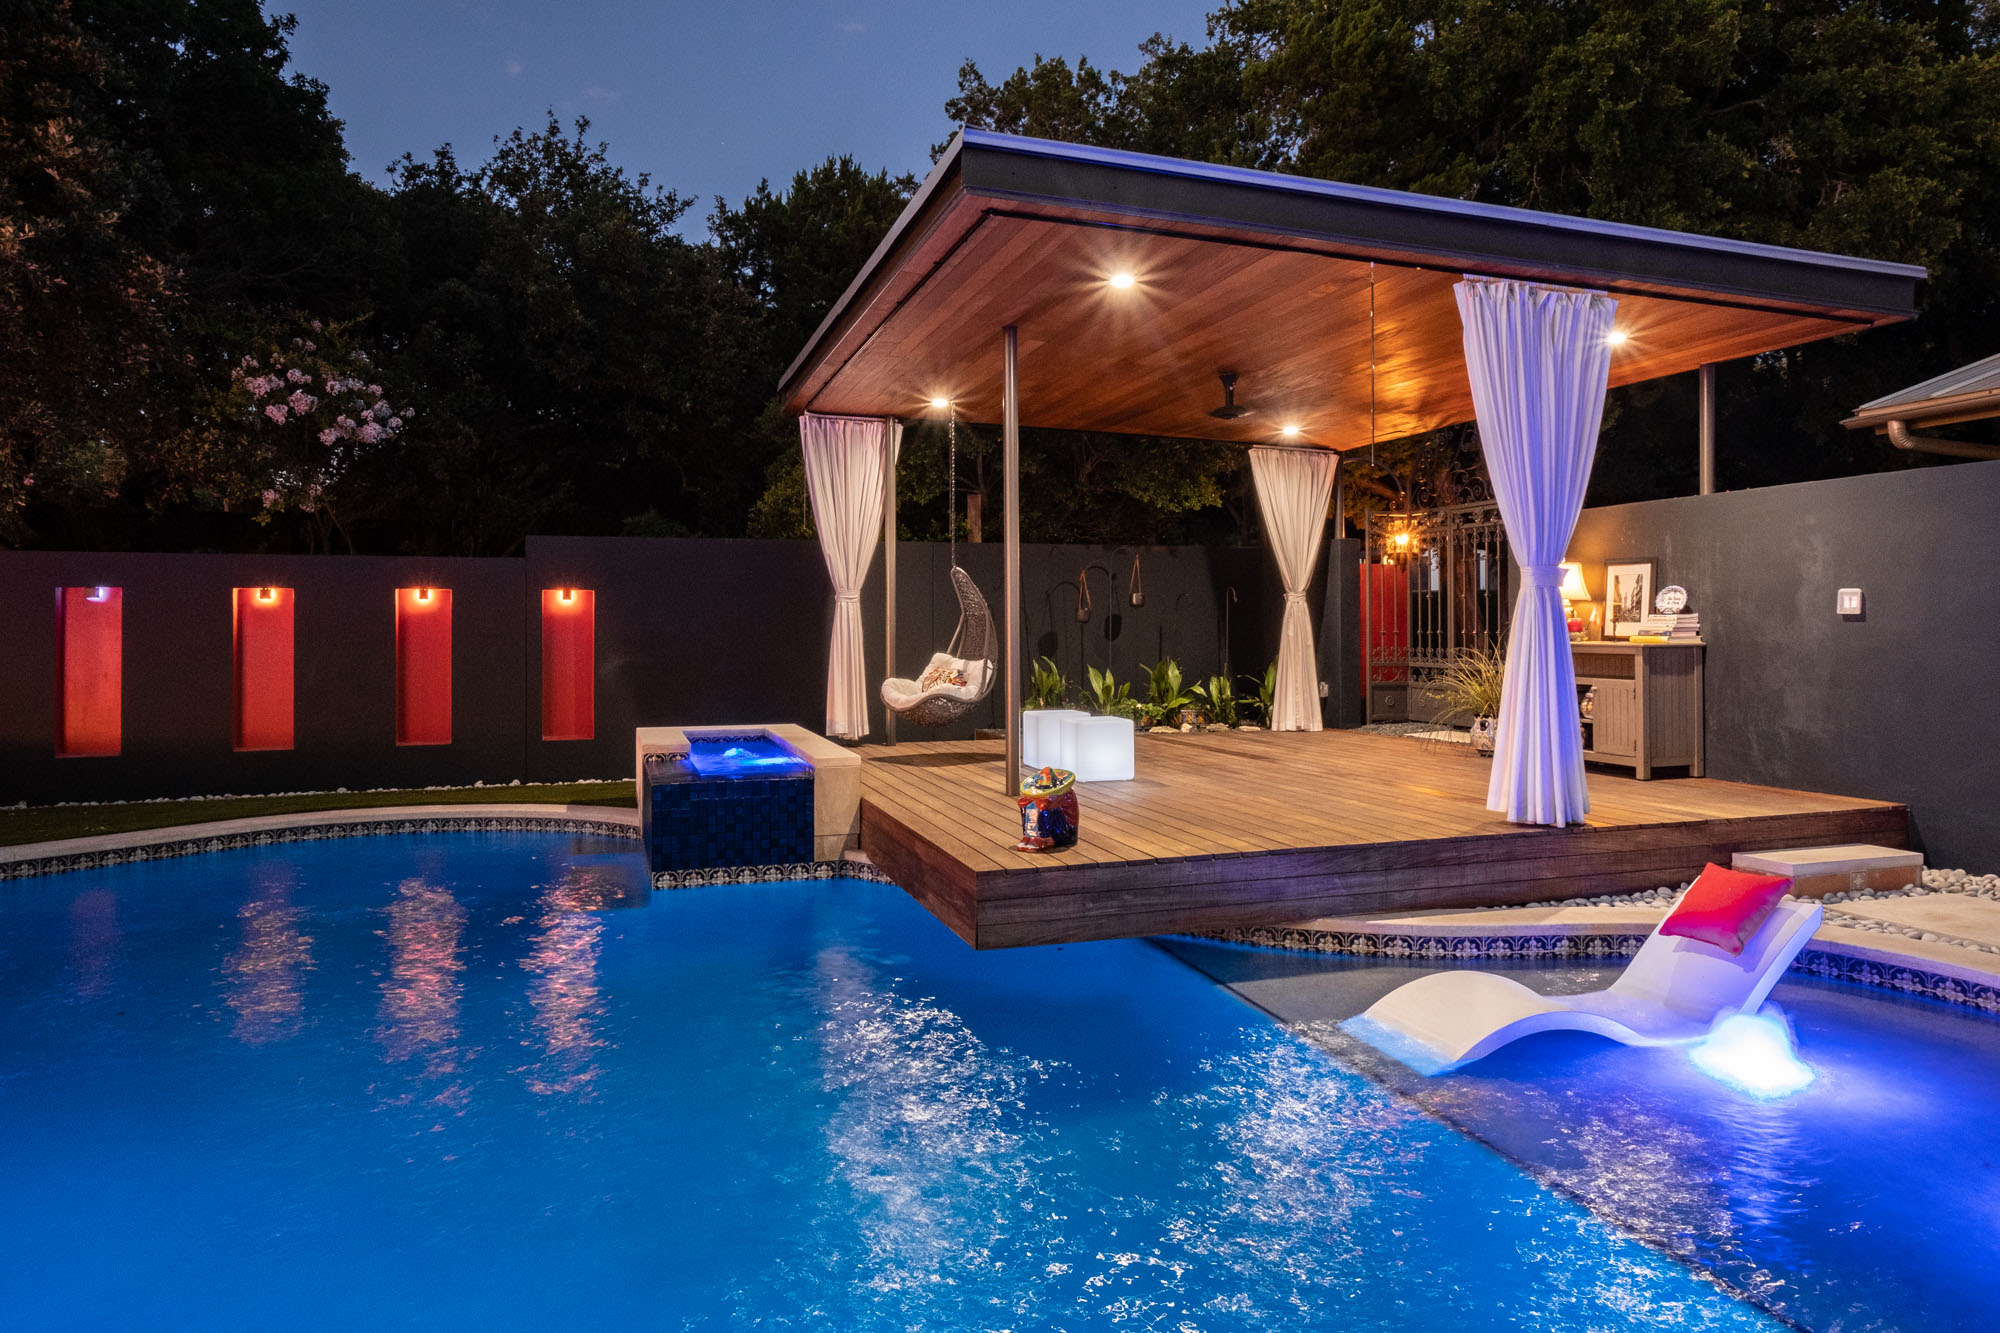 Austin Outdoor Design Cabana and Spanish Gate